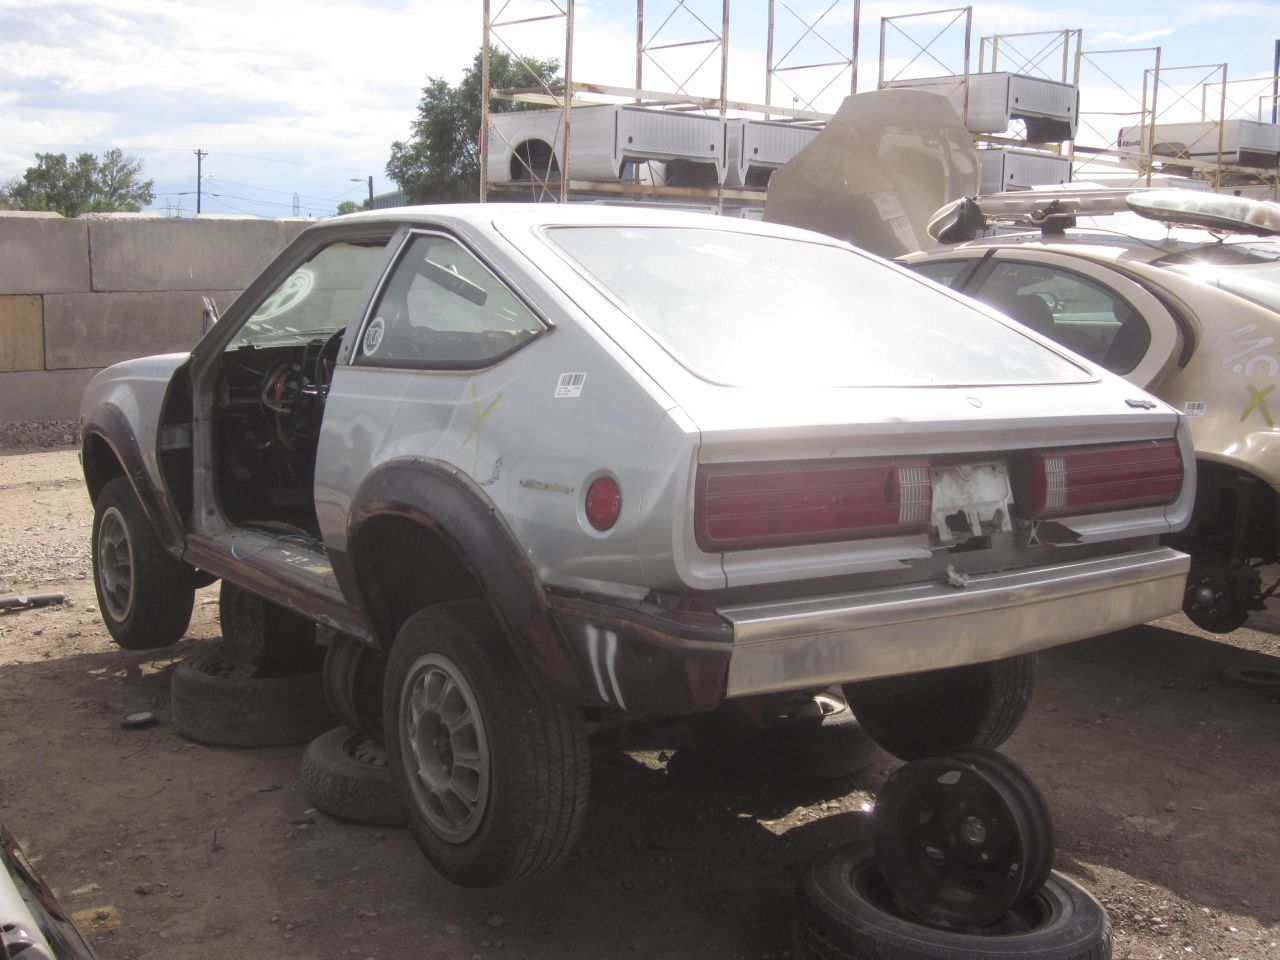 Junkyard Find: Iron Duked 1981 AMC Eagle SX/4